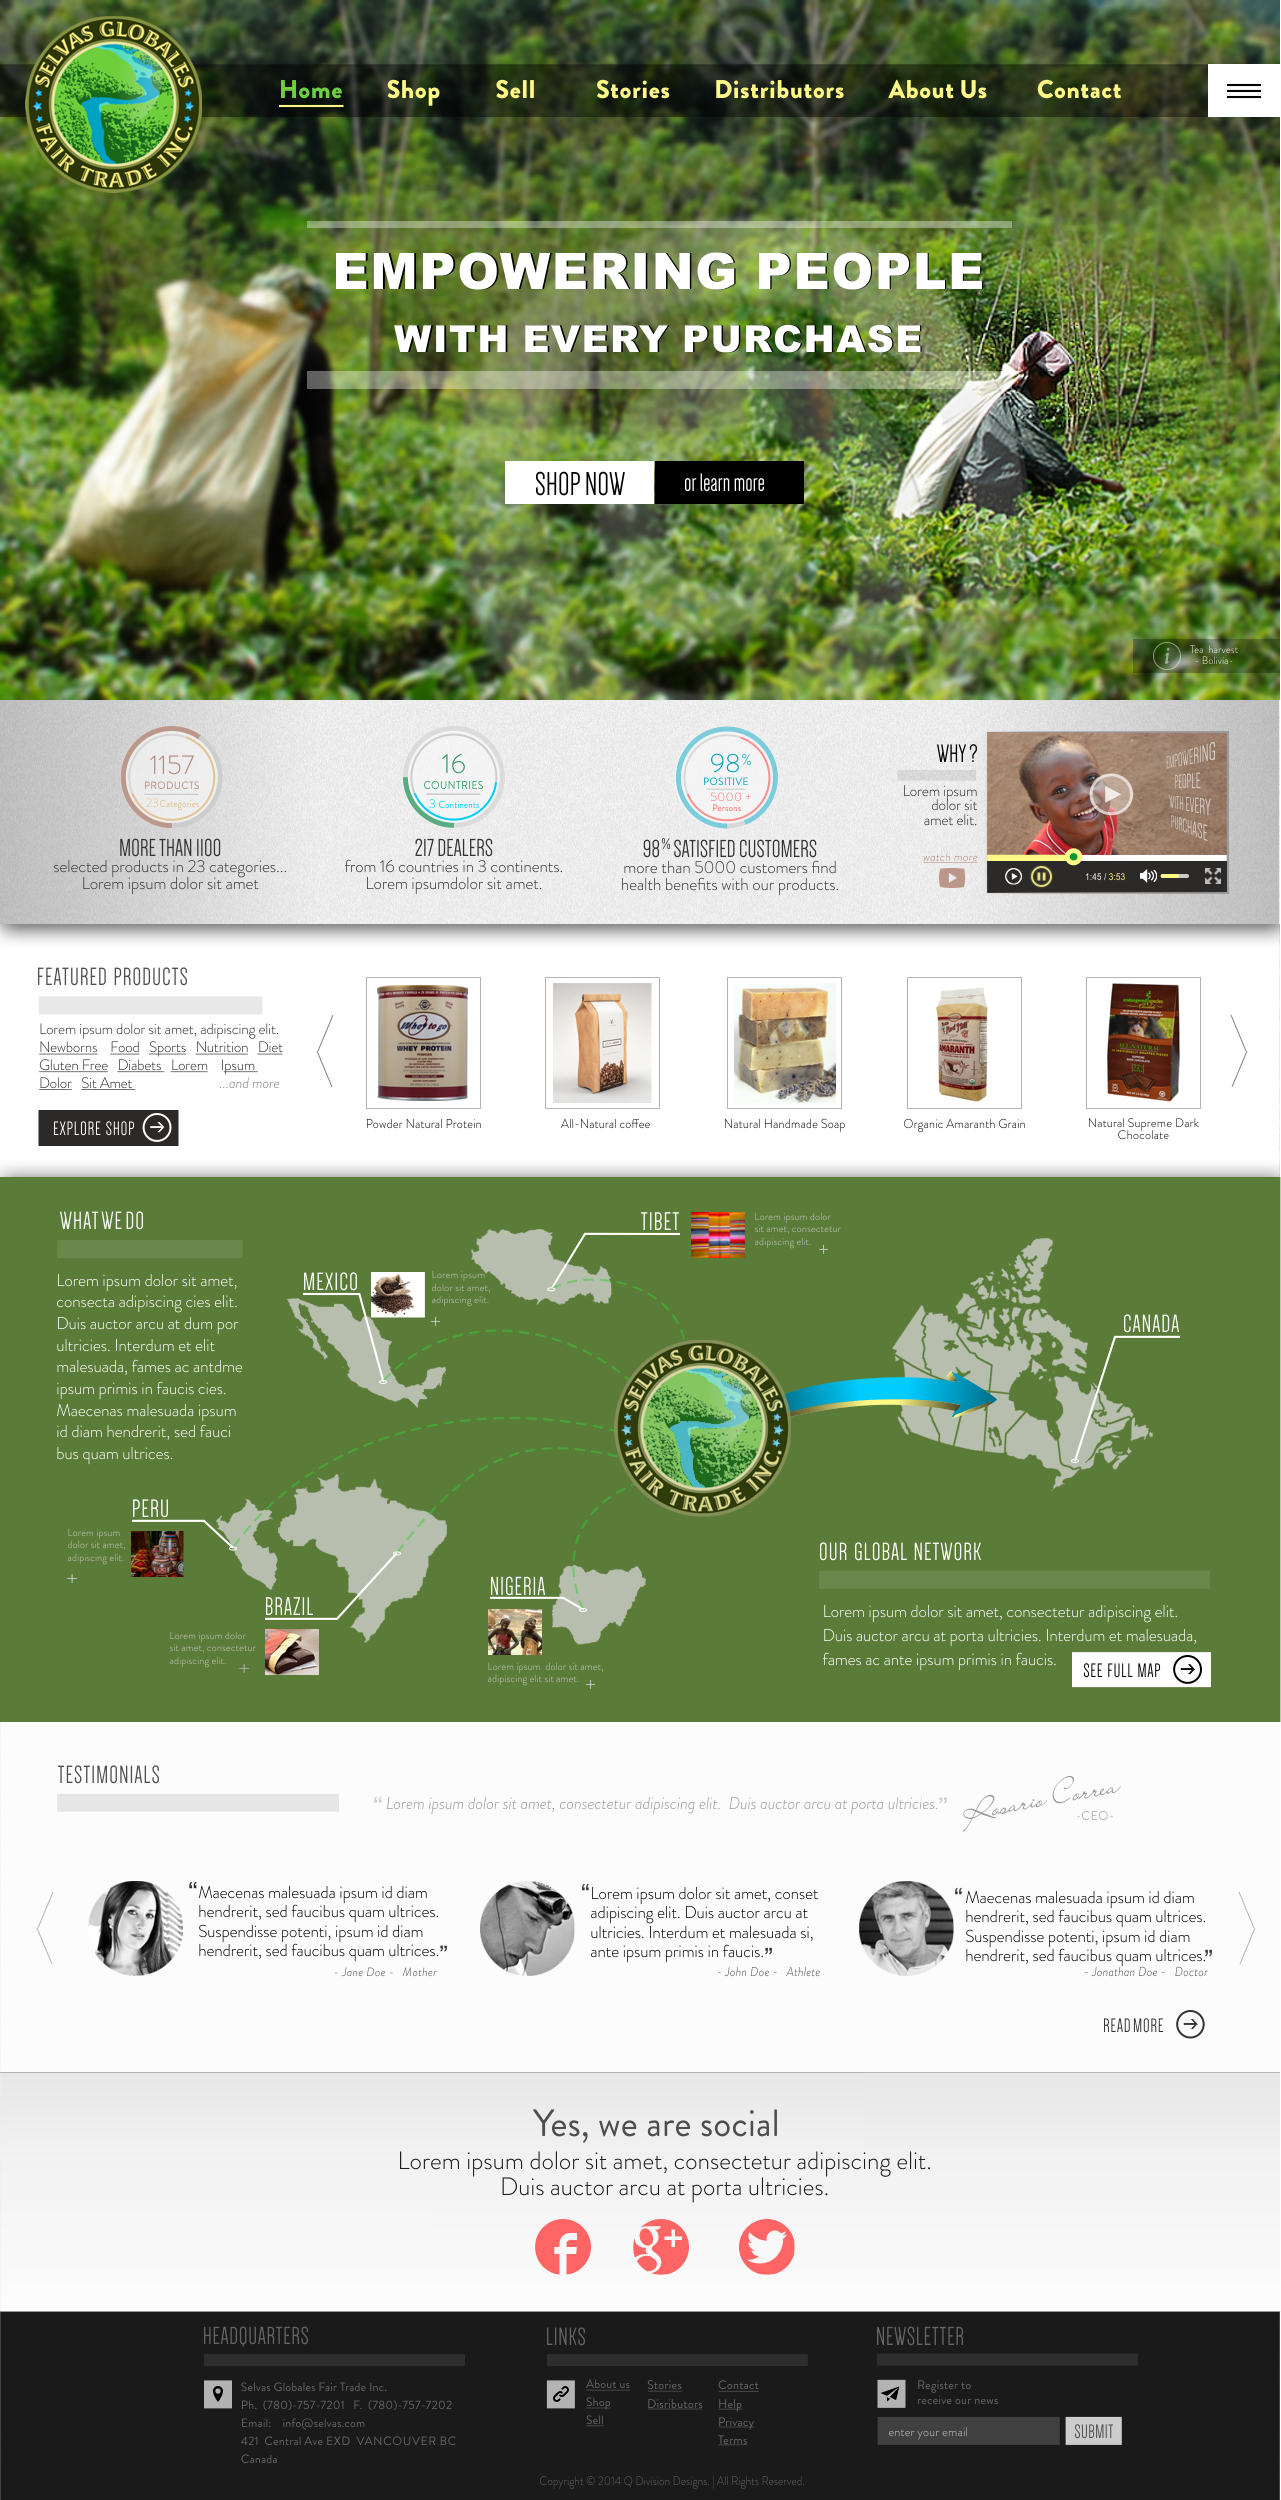 Web Page Design by Q_Division_Designs - Entry No. 11 in the Web Page Design Contest Inspiring Web Page Design for Selvas Globales Fair Trade Inc..